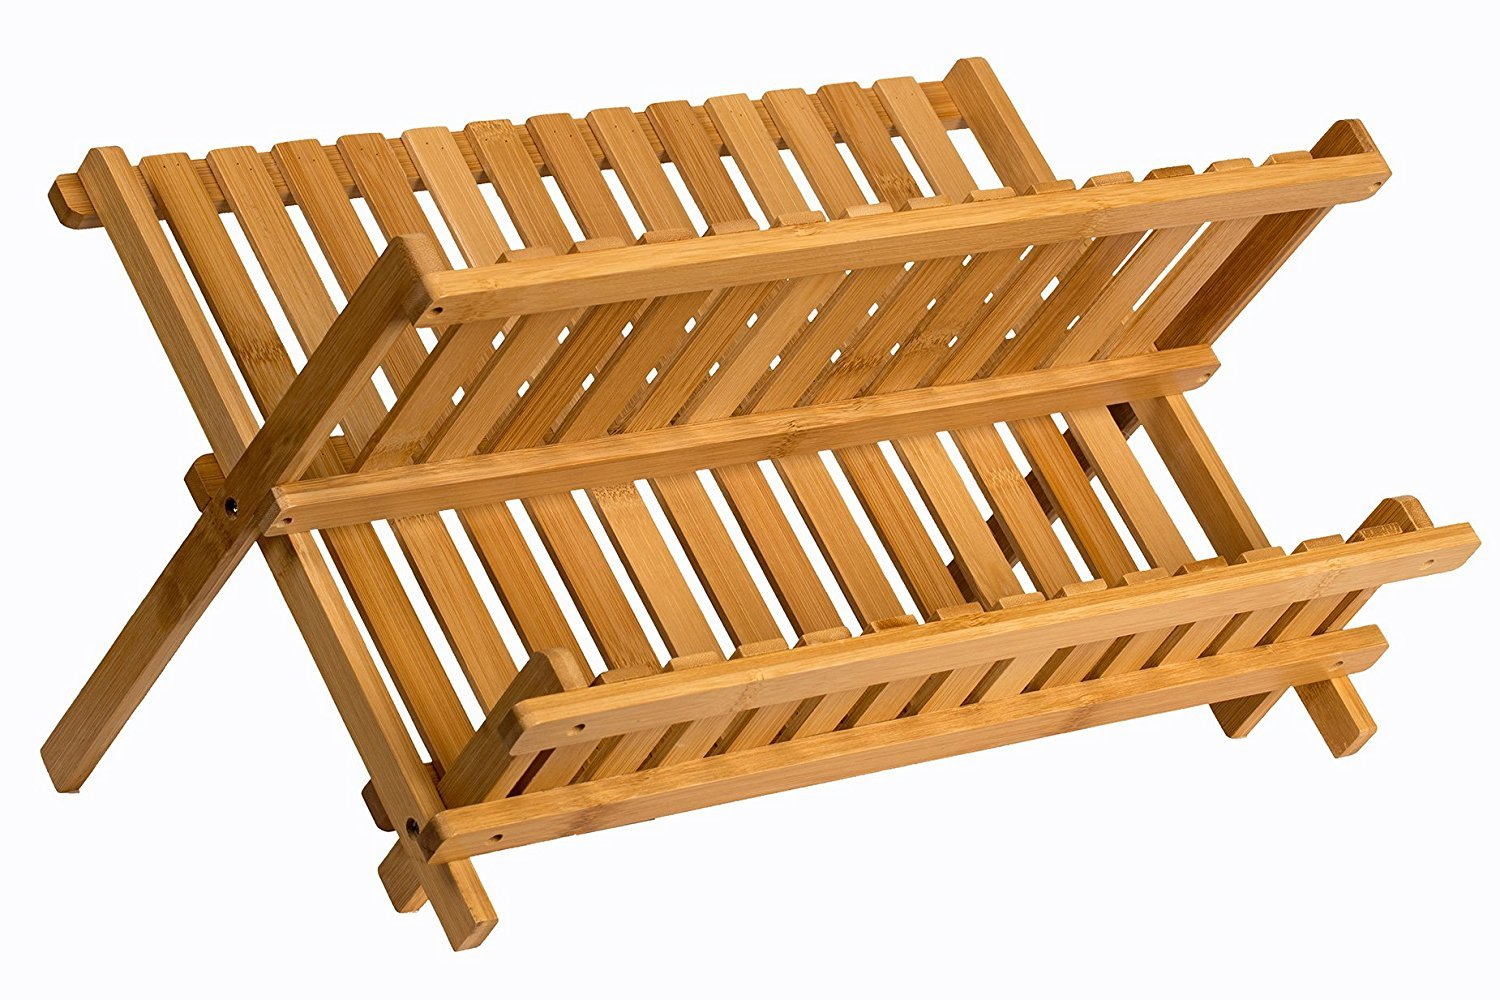 Sagler wooden dish rack plate rack Collapsible Compact dish drying rack Bamboo dish drainer SYNCHKG102922